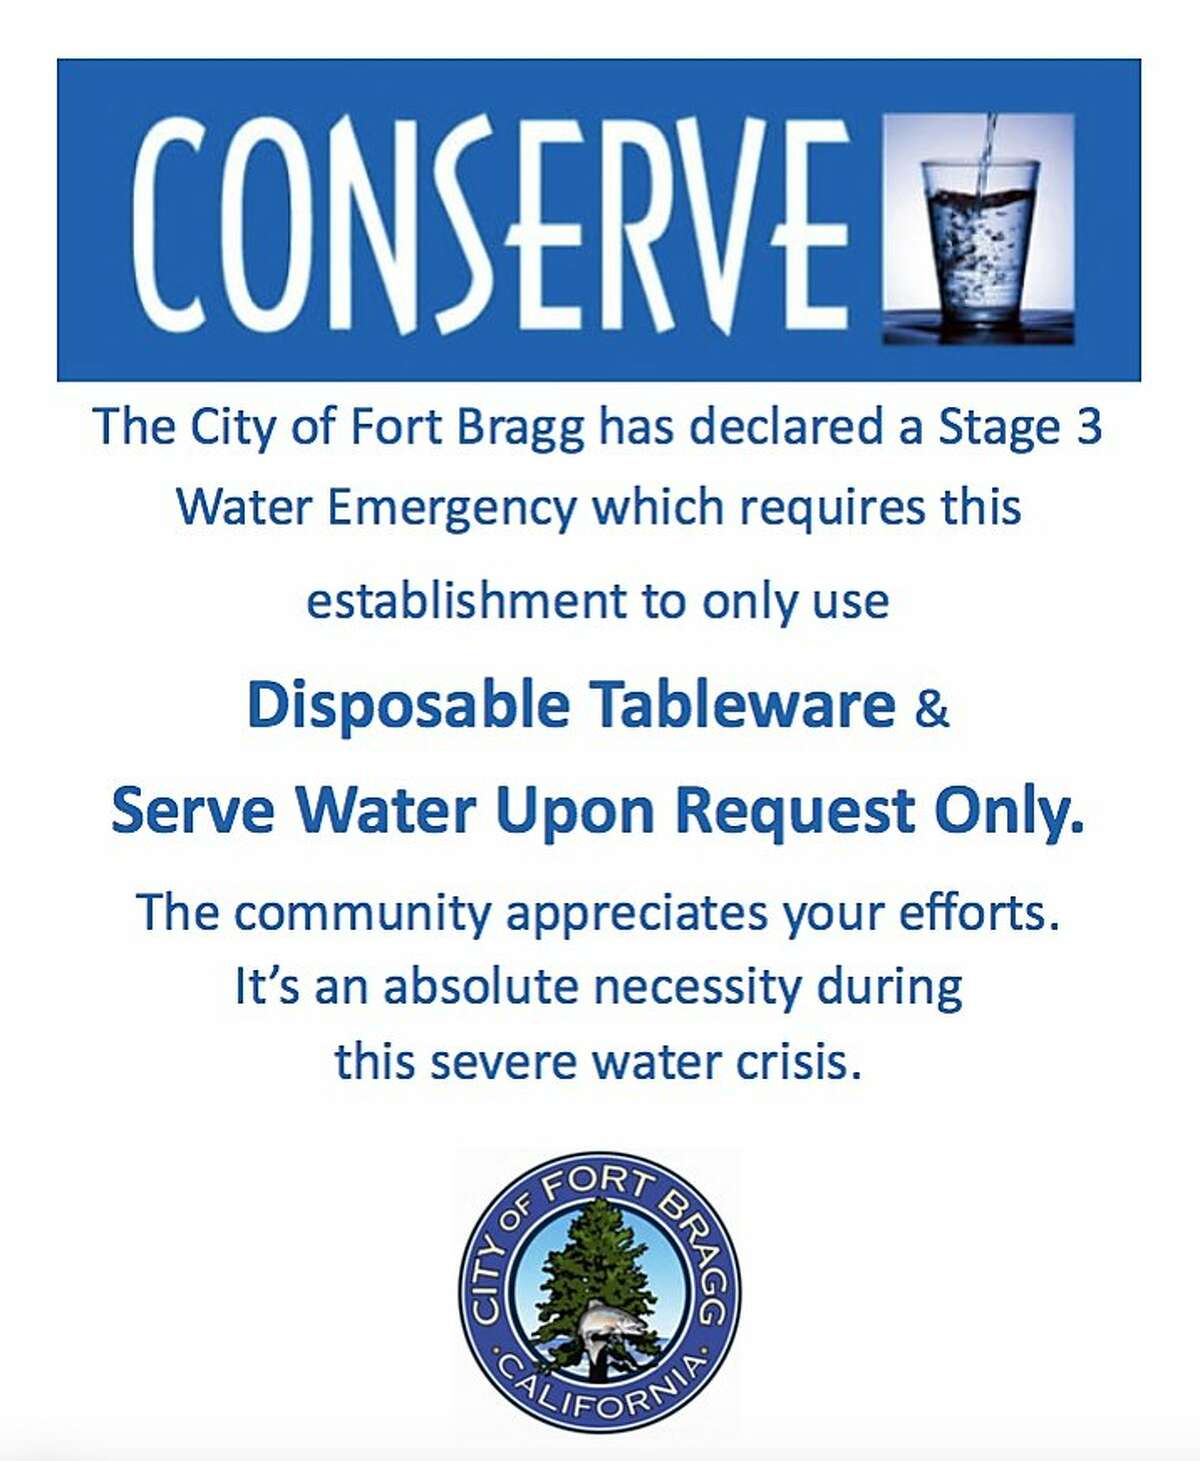 This sign was given to restaurants that have been ordered to use disposable plates and cups after Fort Bragg (Mendocino County) declared a Stage 3 water emergency in September 2015.